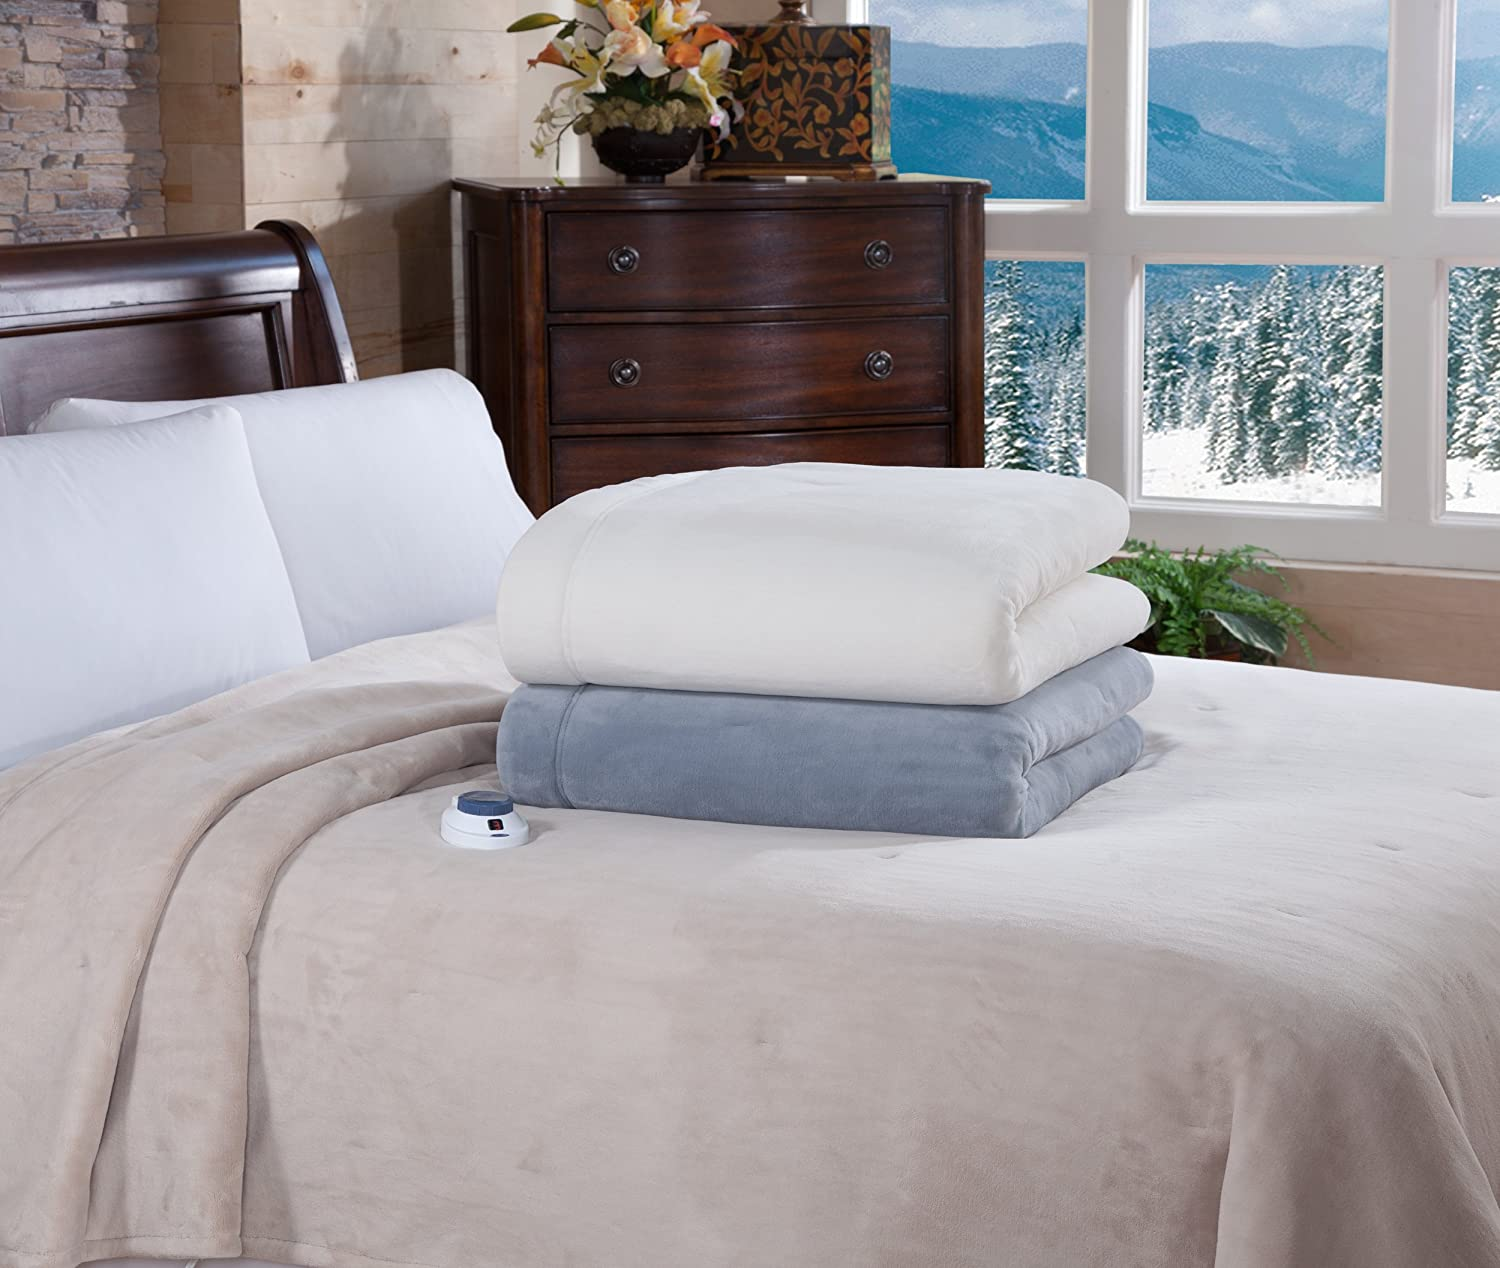 Amazon.com: Soft Heat Luxurious Macromink Fleece Low-Voltage Electric Heated  Blanket, King Size, Natural: Home & Kitchen